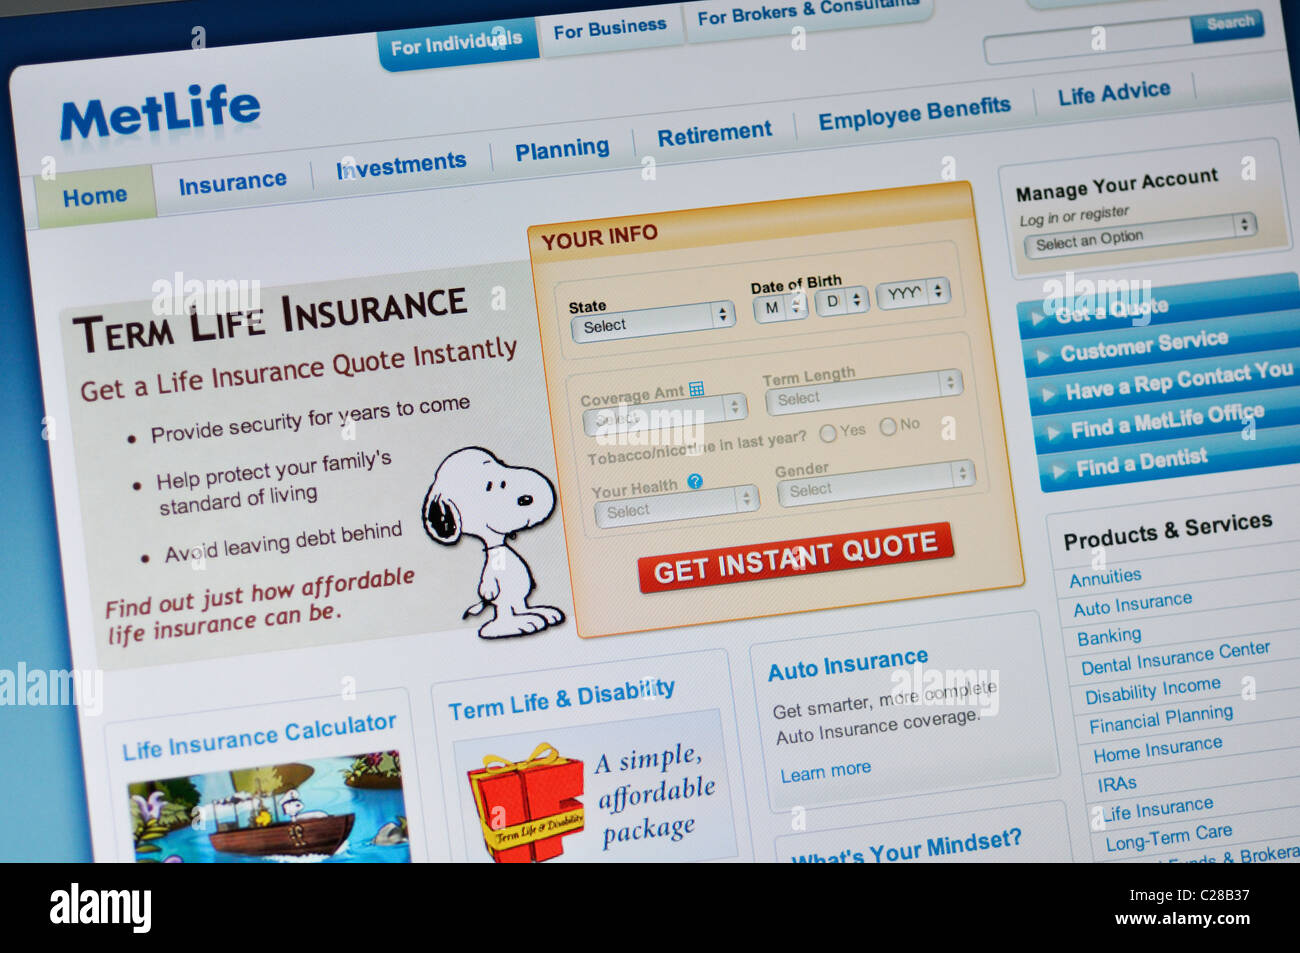 Metlife Website Insurance Quotes Stock Photo Alamy